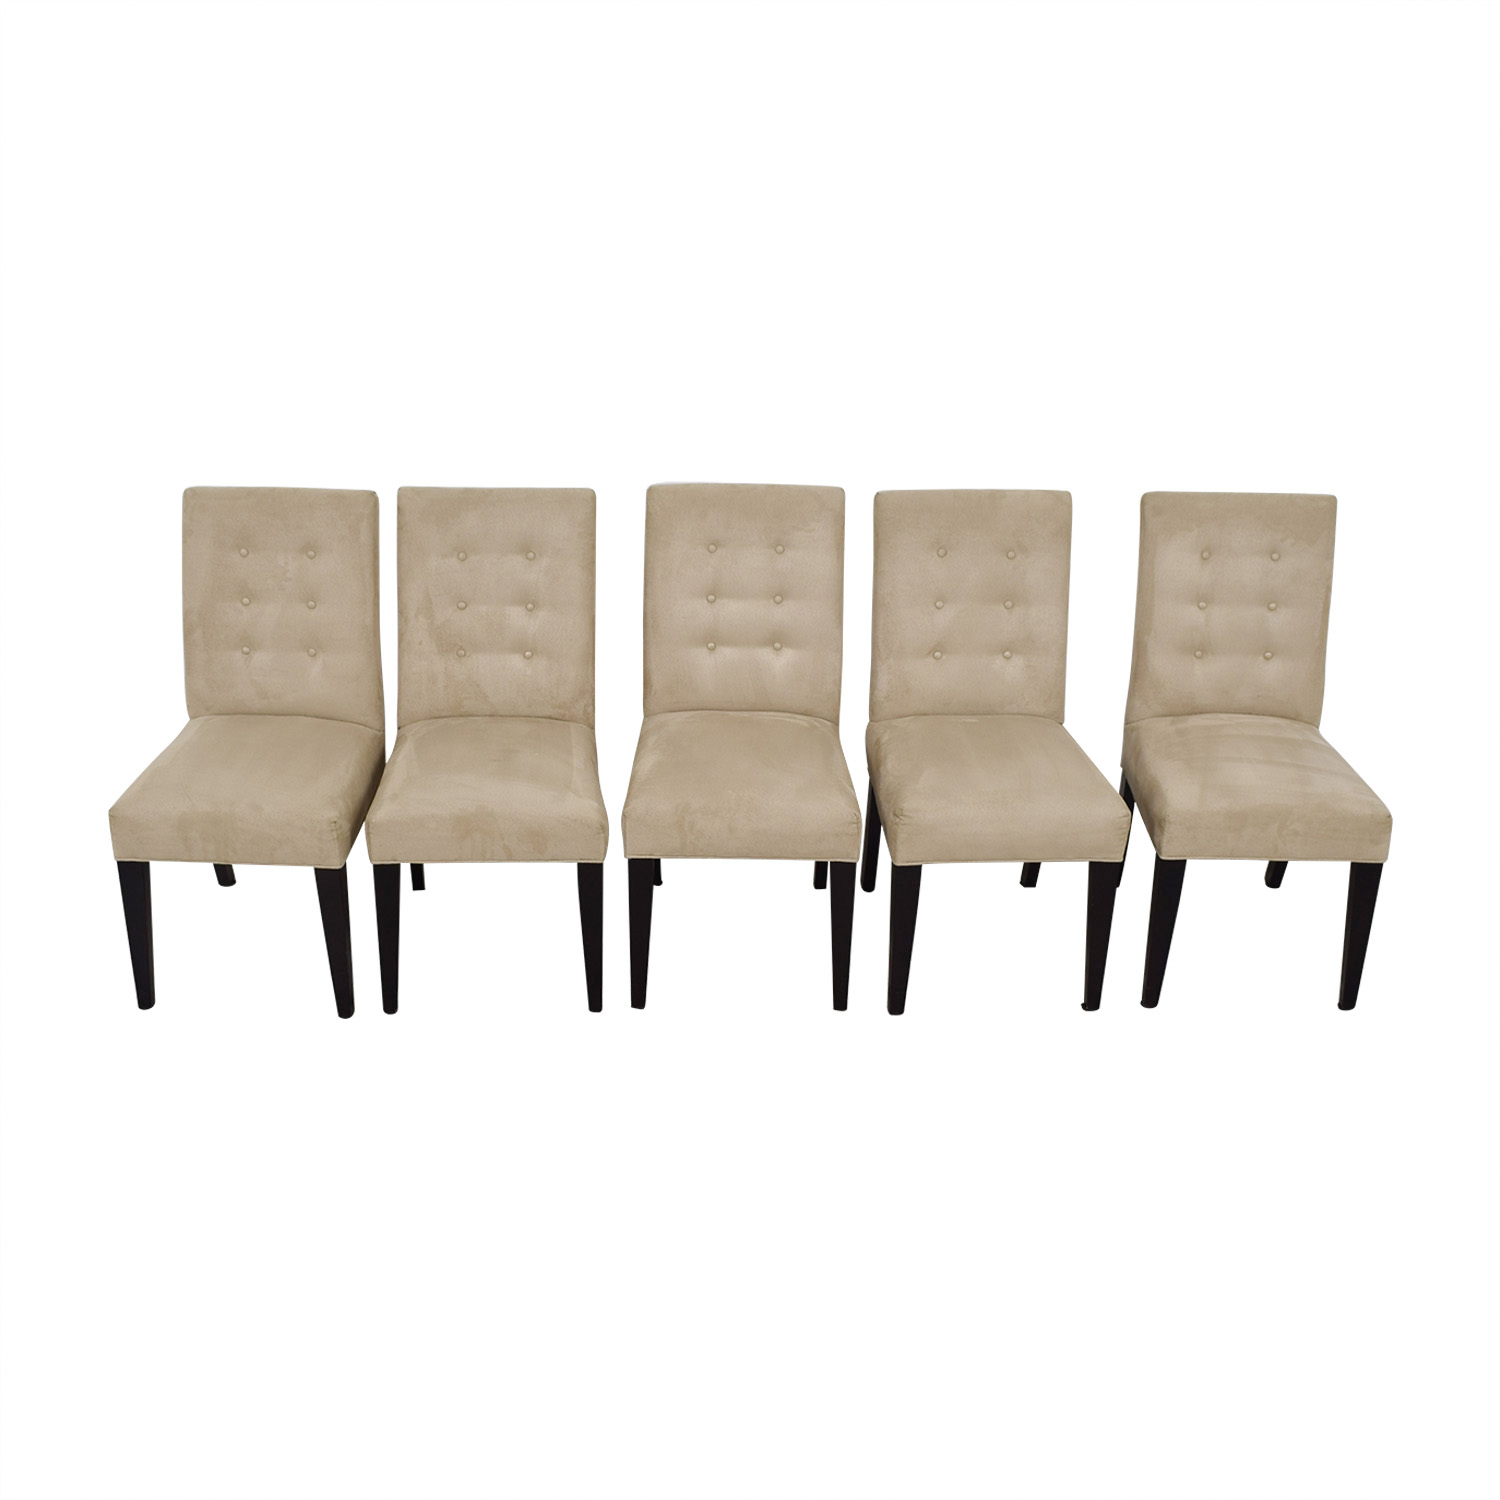 Mitchell Gold + Bob Williams Mitchell Gold + Bob Williams Grey Tufted Chairs discount